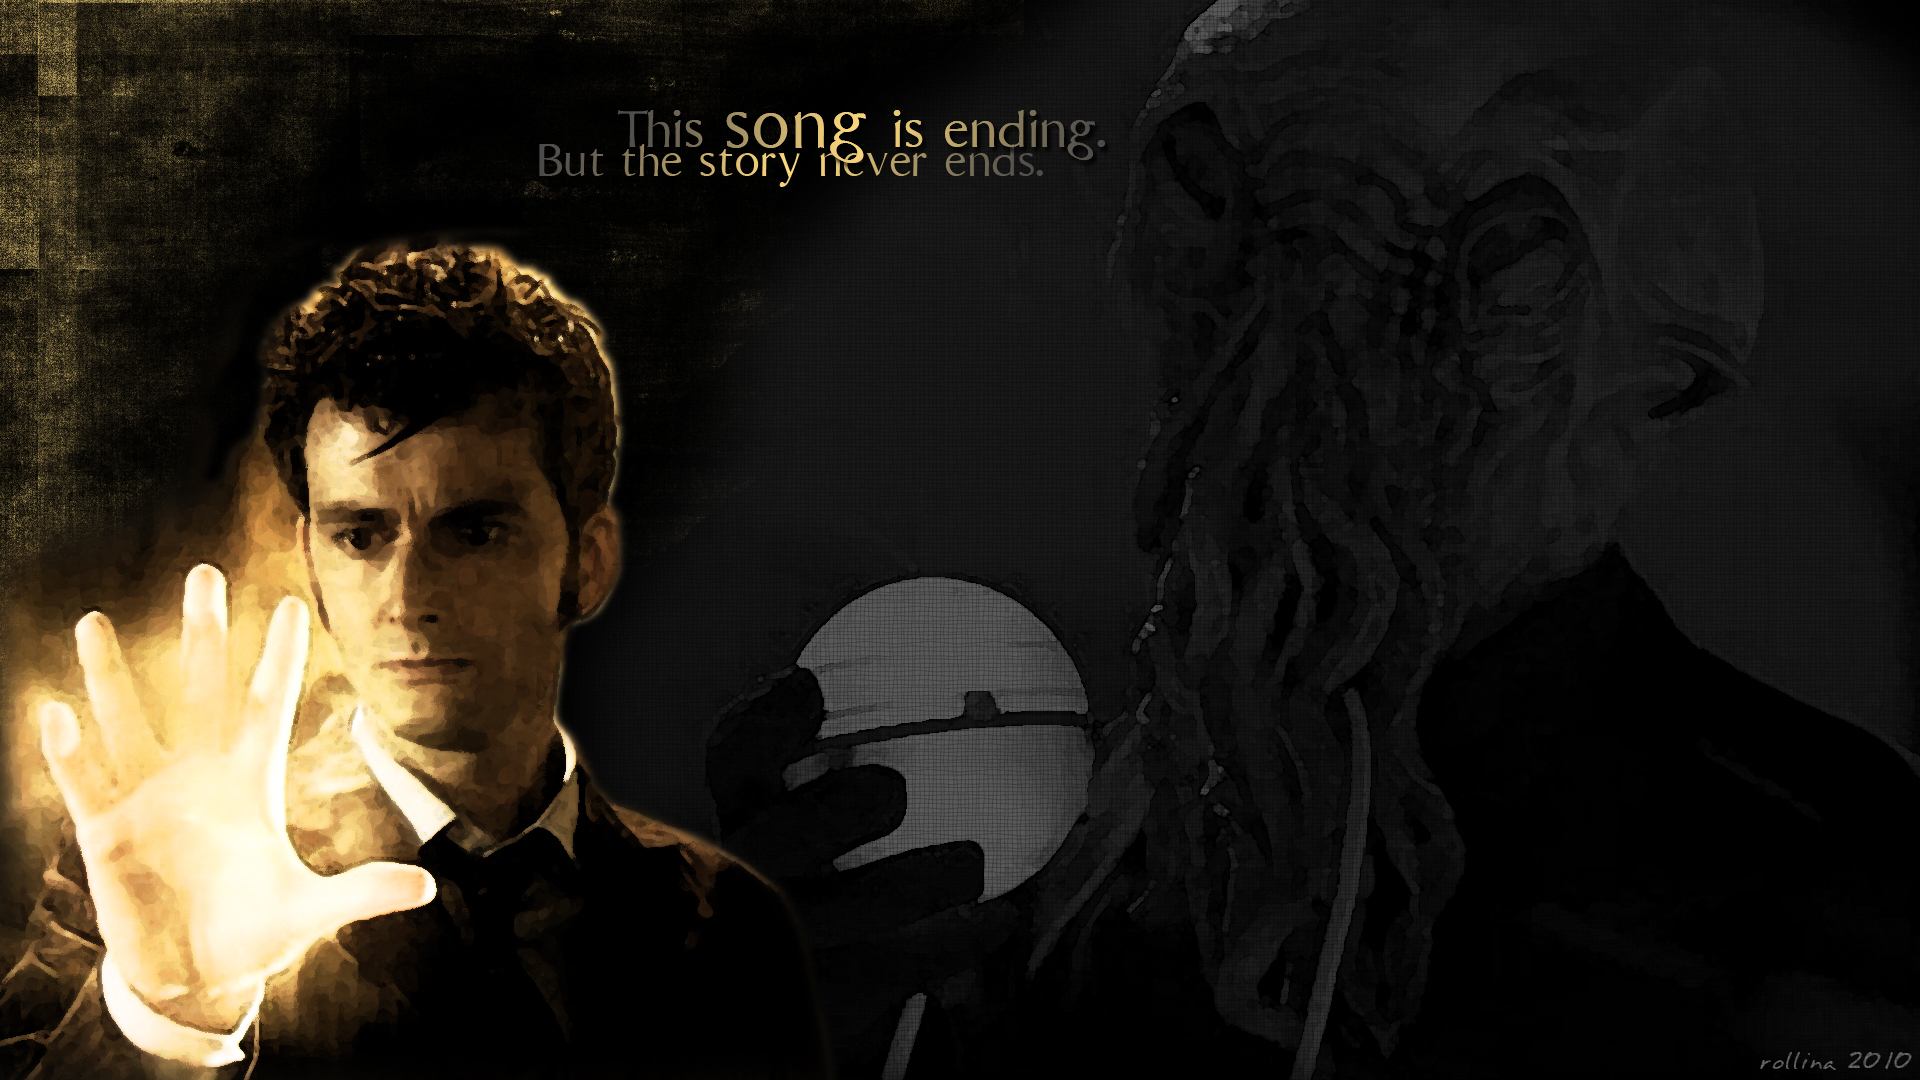 doctor-who-desktop-background-hd | wallpaper.wiki